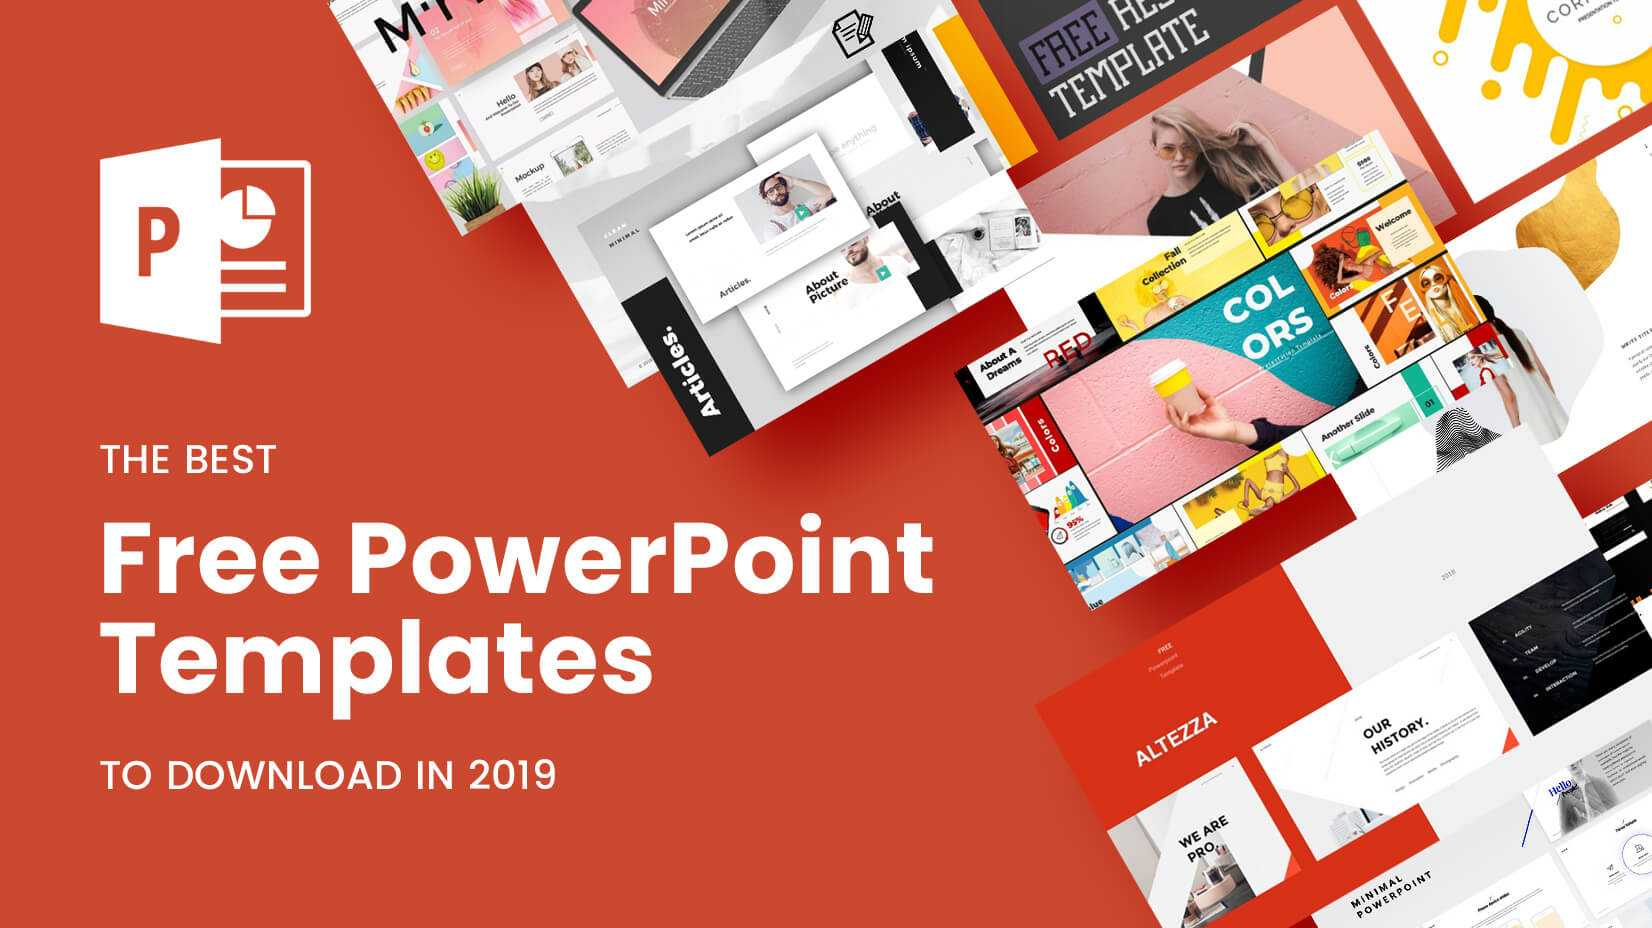 The Best Free Powerpoint Templates To Download In 2019 intended for Virus Powerpoint Template Free Download